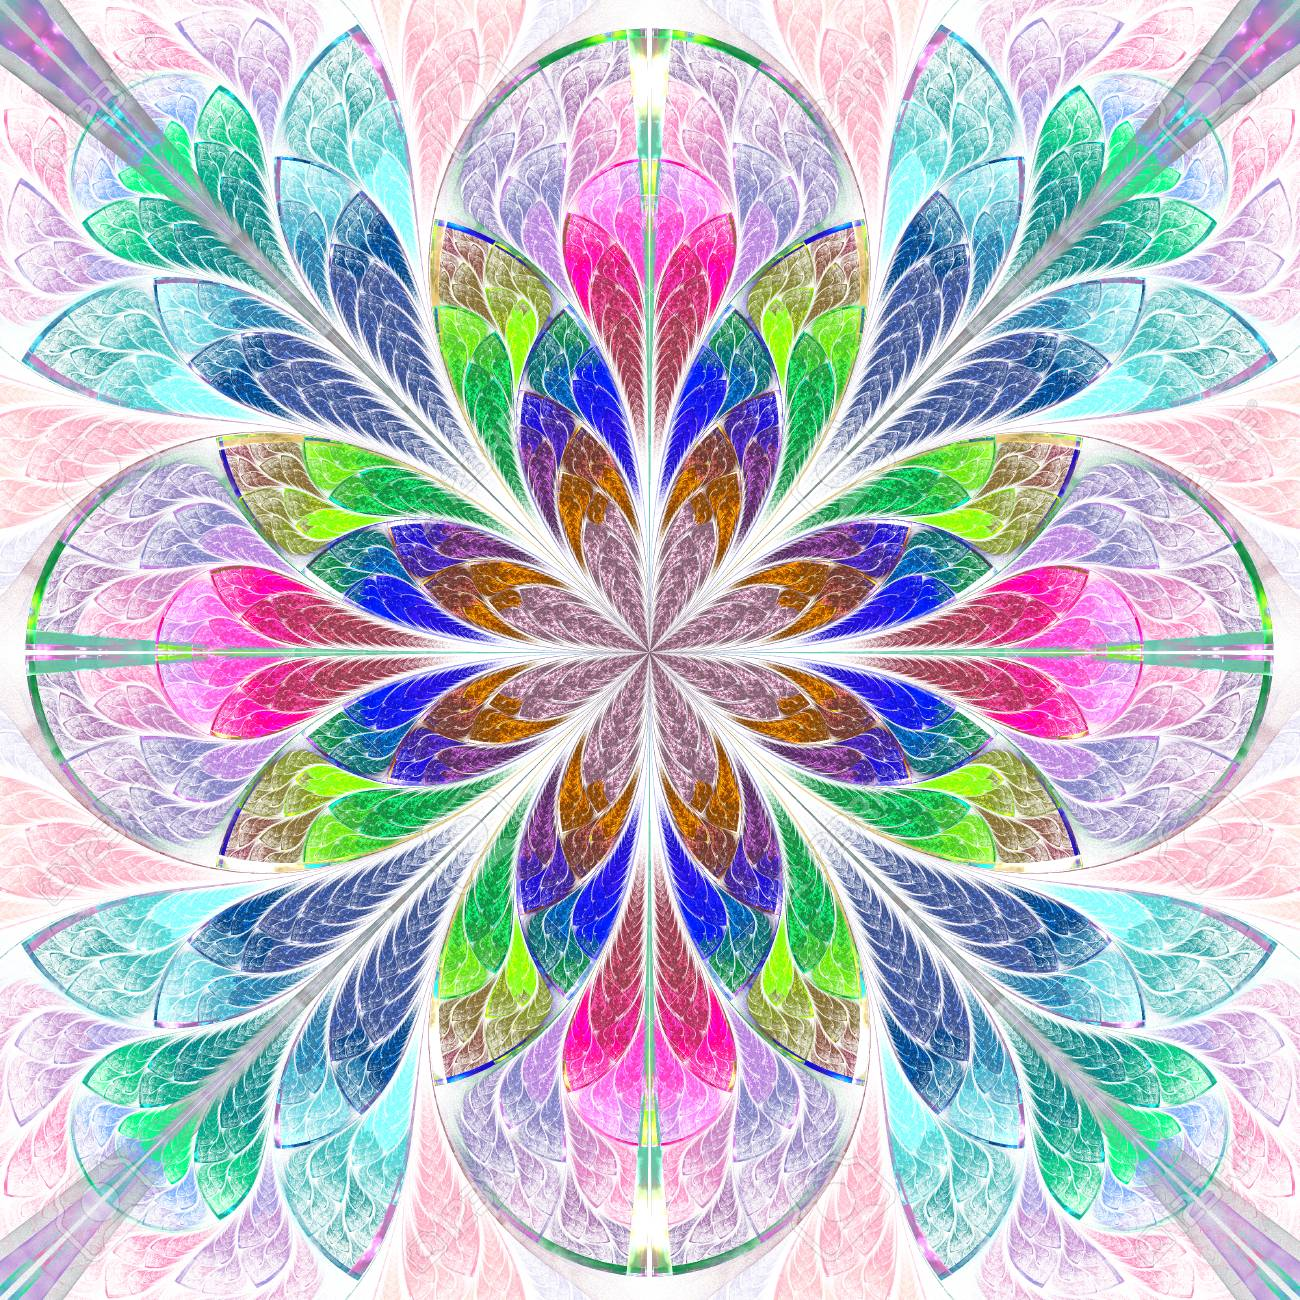 Multicolored Symmetrical Fractal Flower In Stained Glass Window Stock Photo Picture And Royalty Free Image Image 62414867